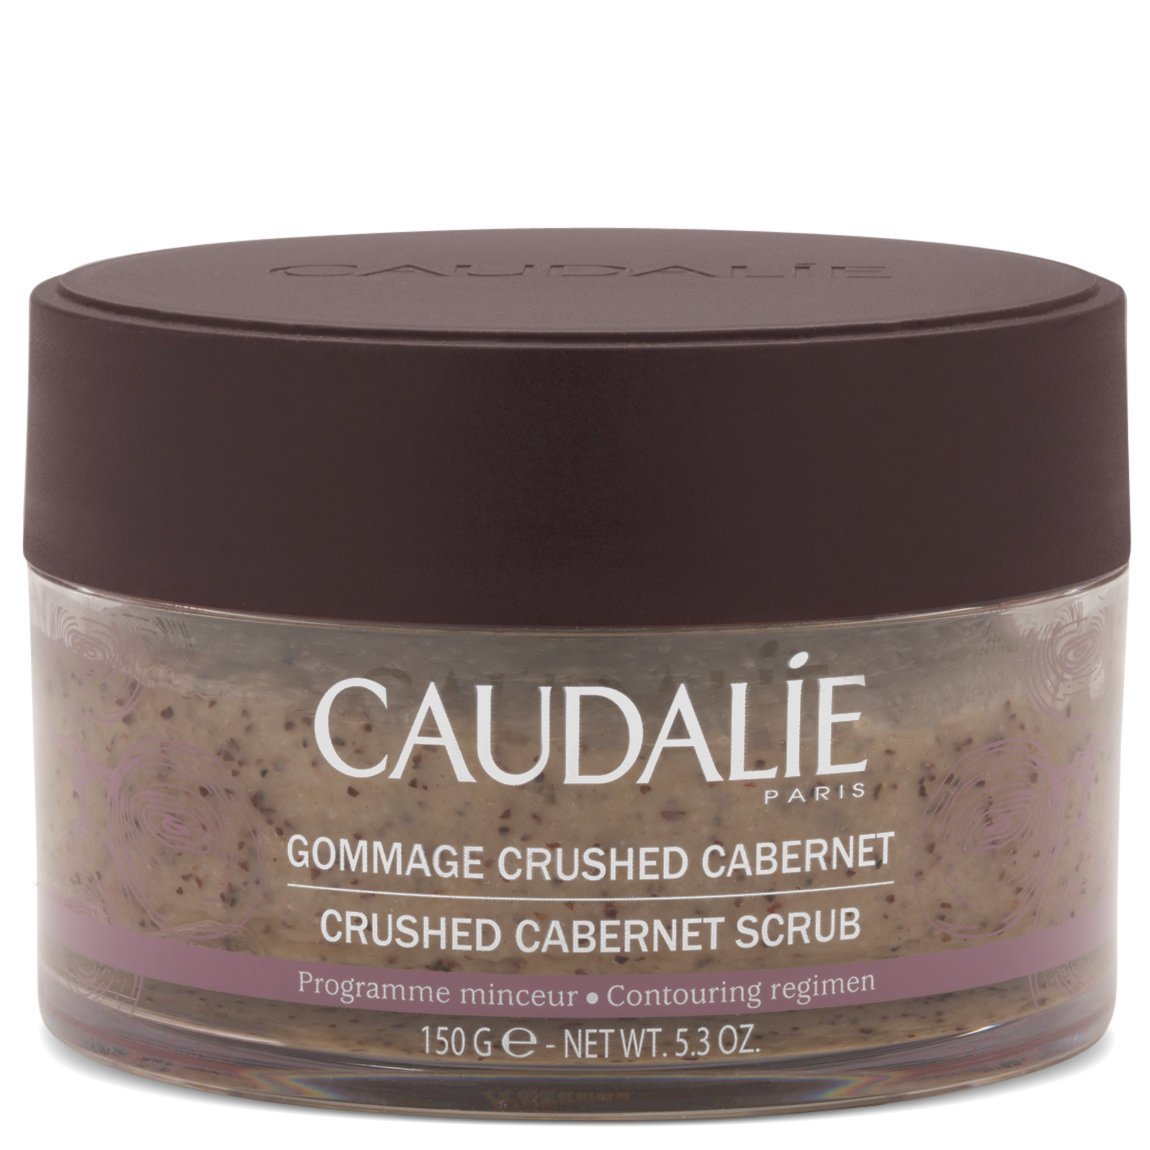 Caudalie Crushed Cabernet Scrub product swatch.